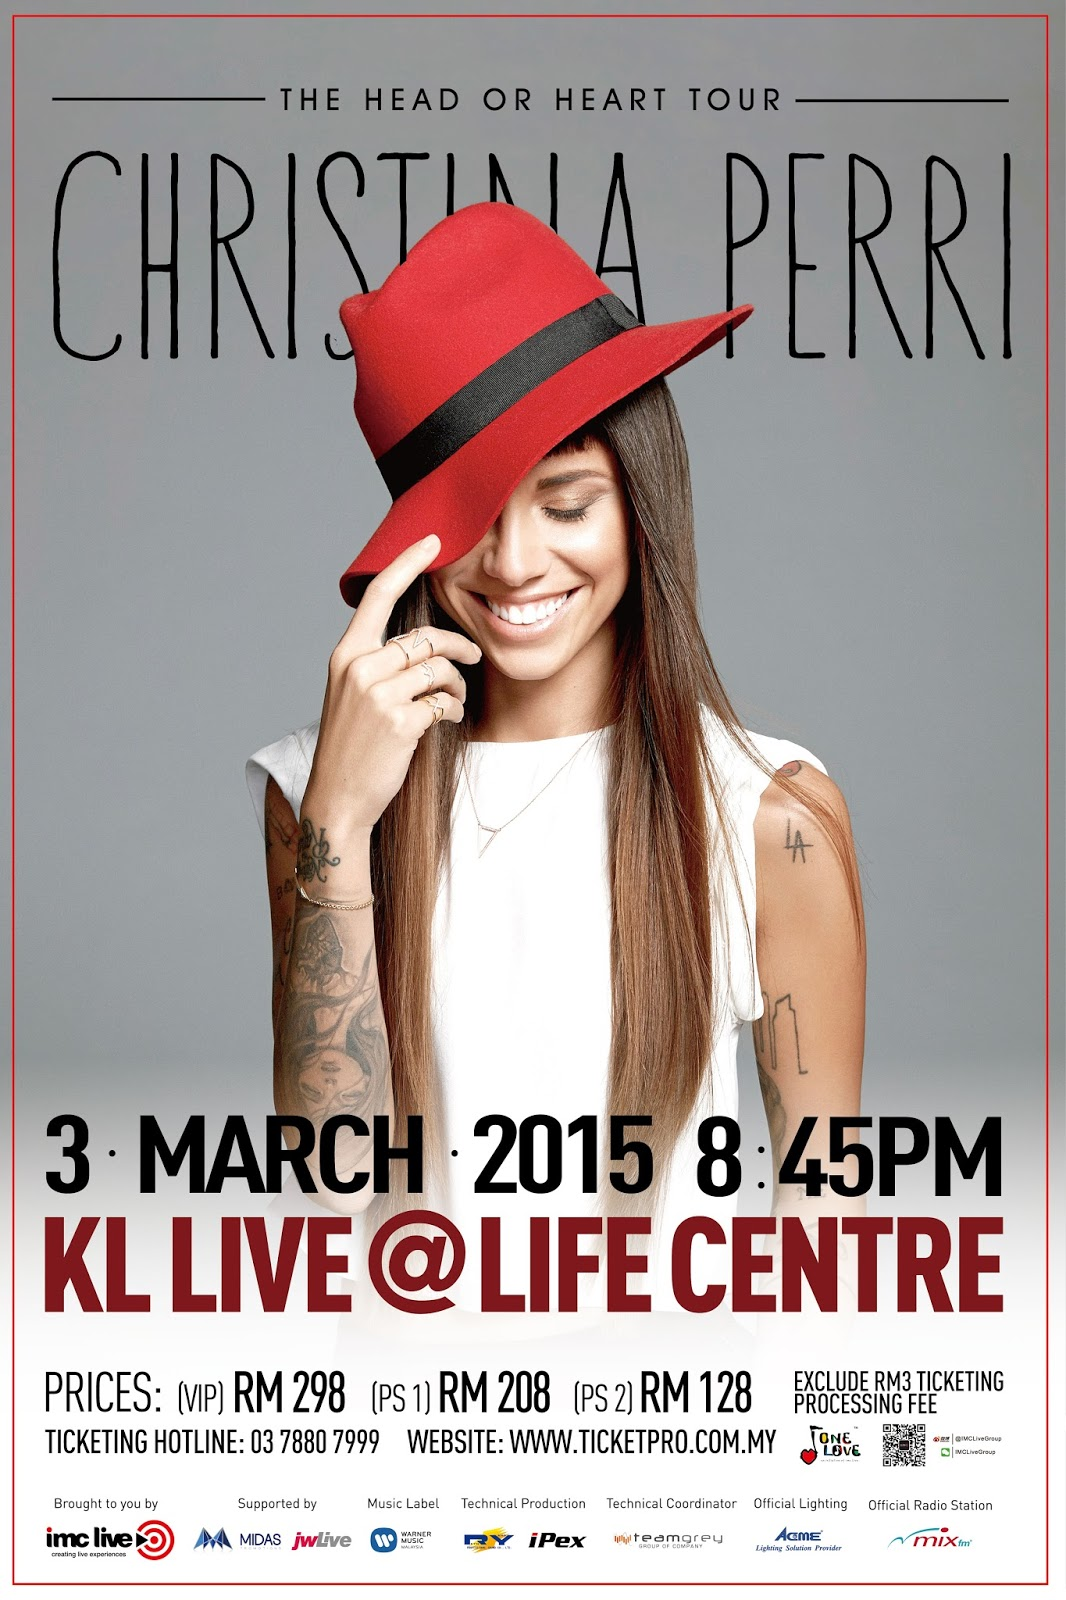 Christina Perri The Head or Heart Tour Live in Malaysia [3 March 2015] KL Live @ Life Centre